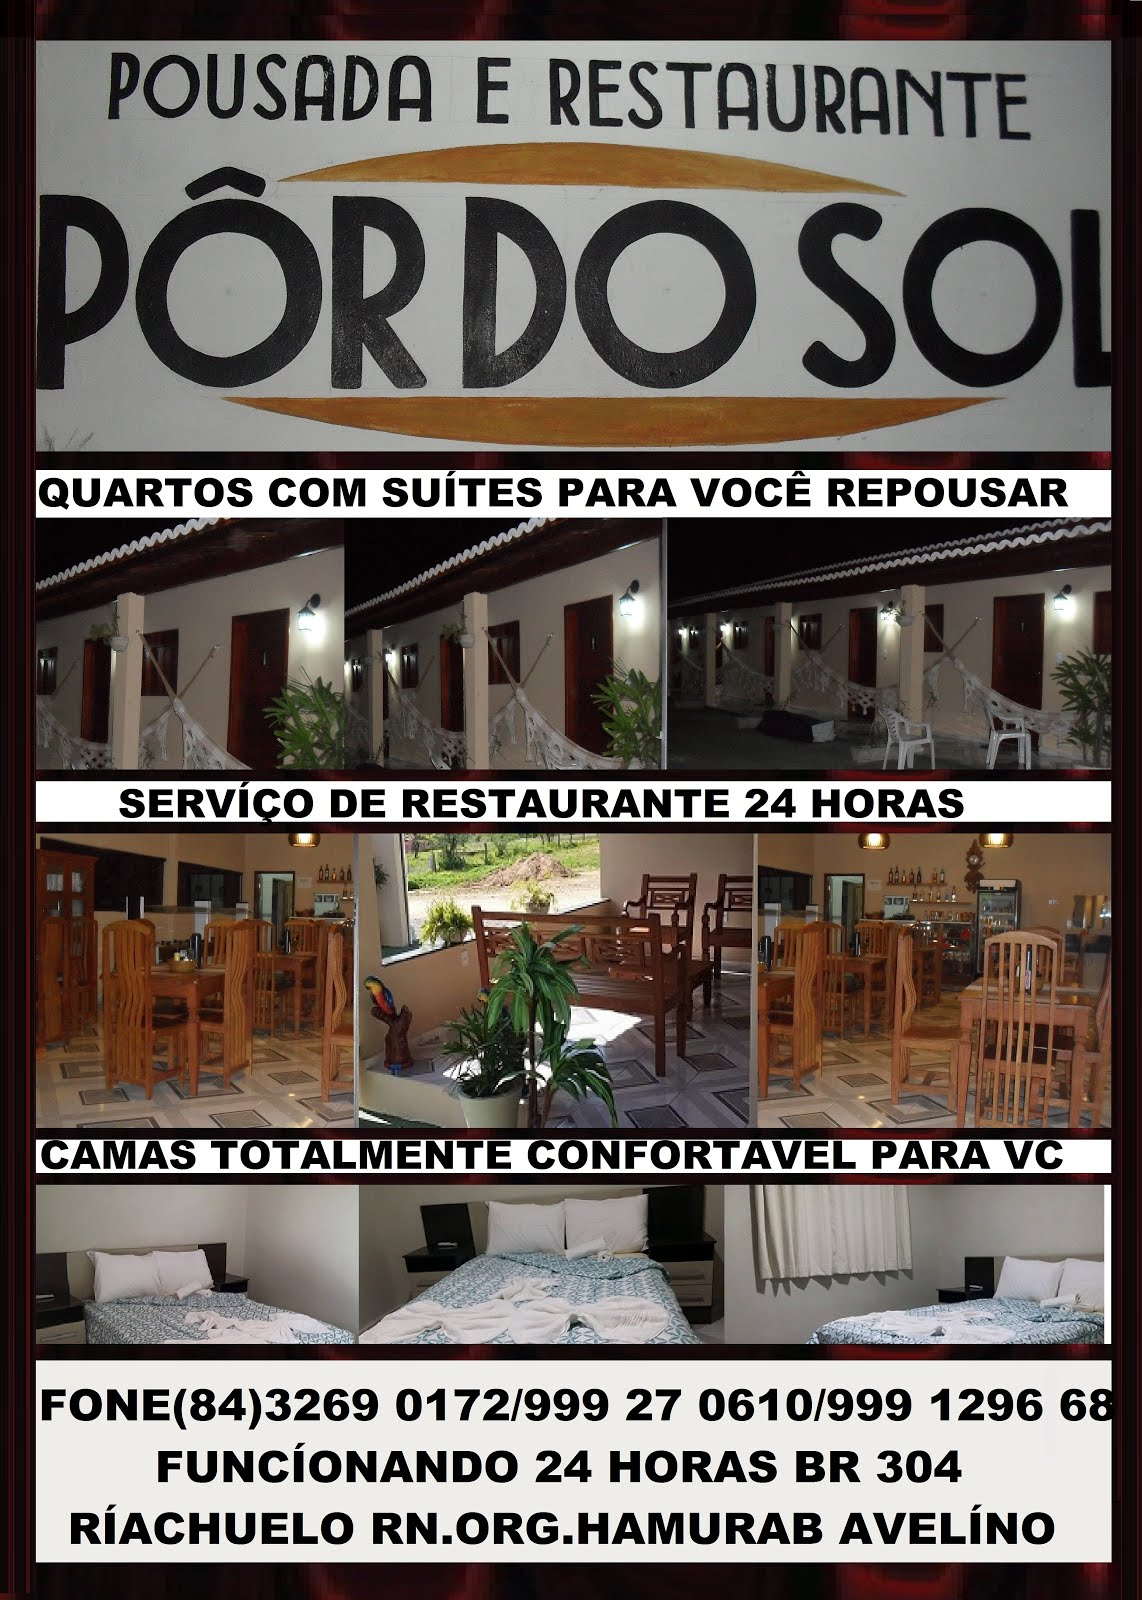 POUSADA E RESTAURANTE POR DO SOL